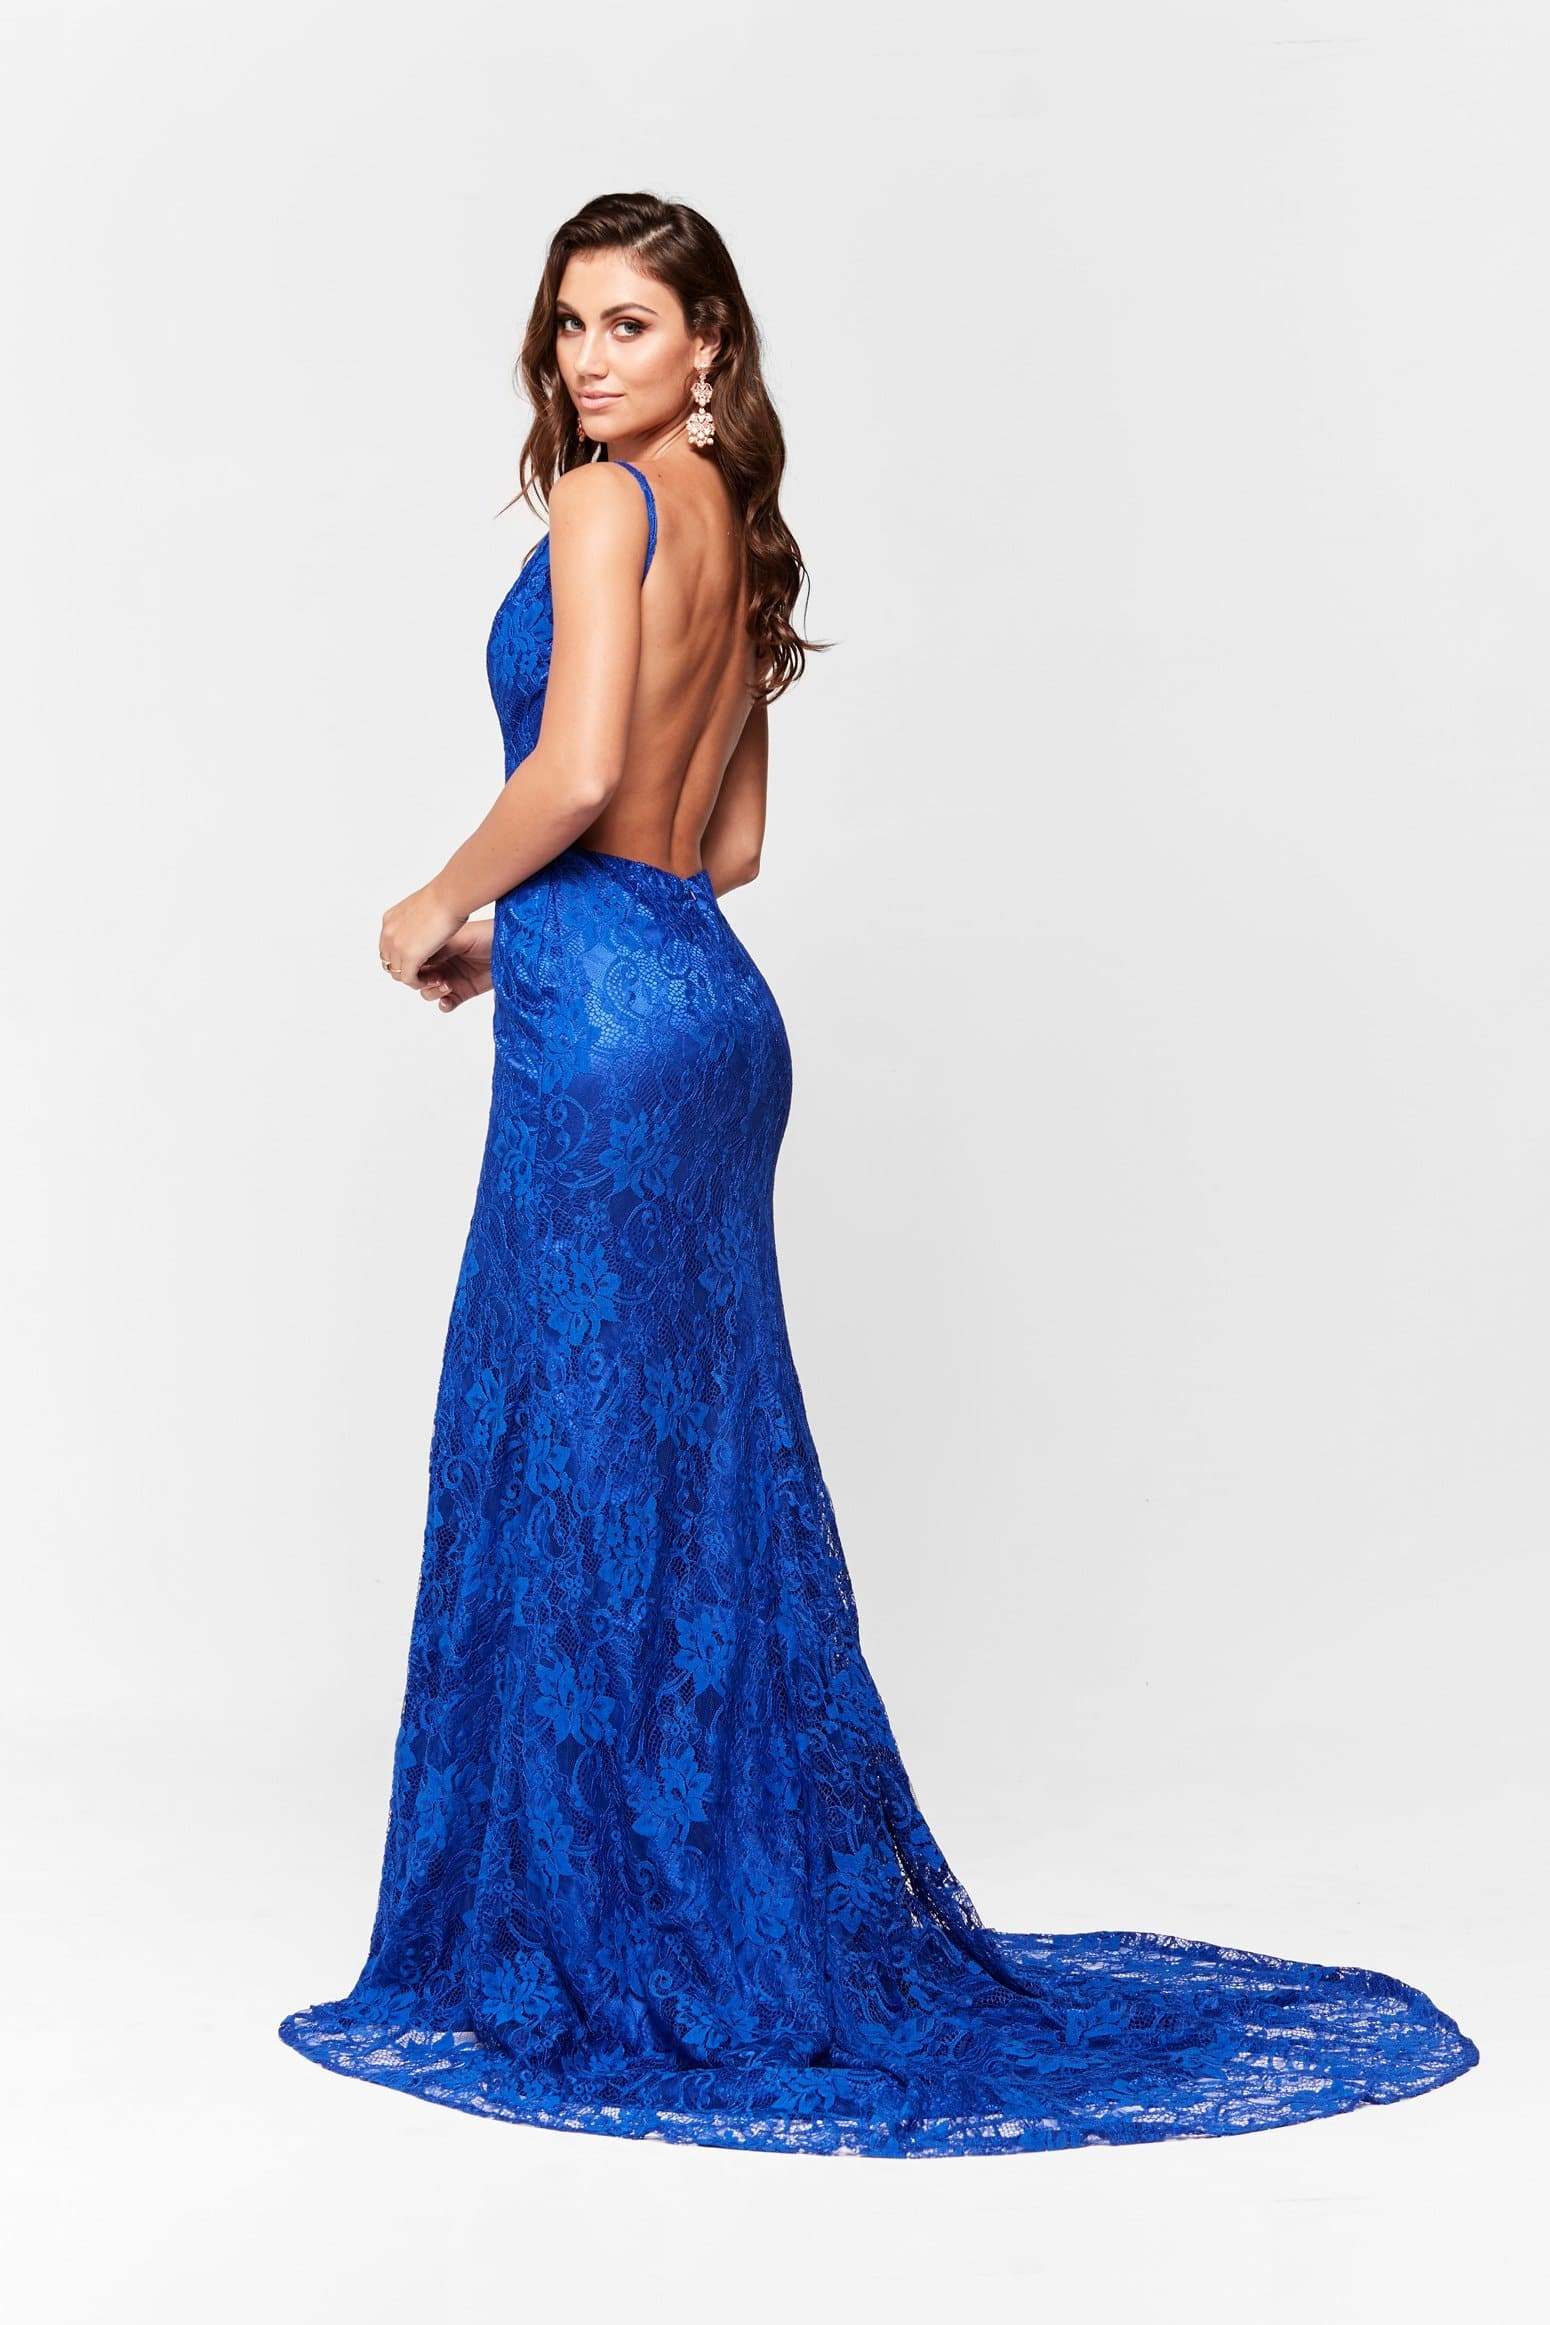 83b0ff0742 A N Ayla - Lace V Neck Formal Gown with Side Slit in Royal Blue – A N Luxe  Label